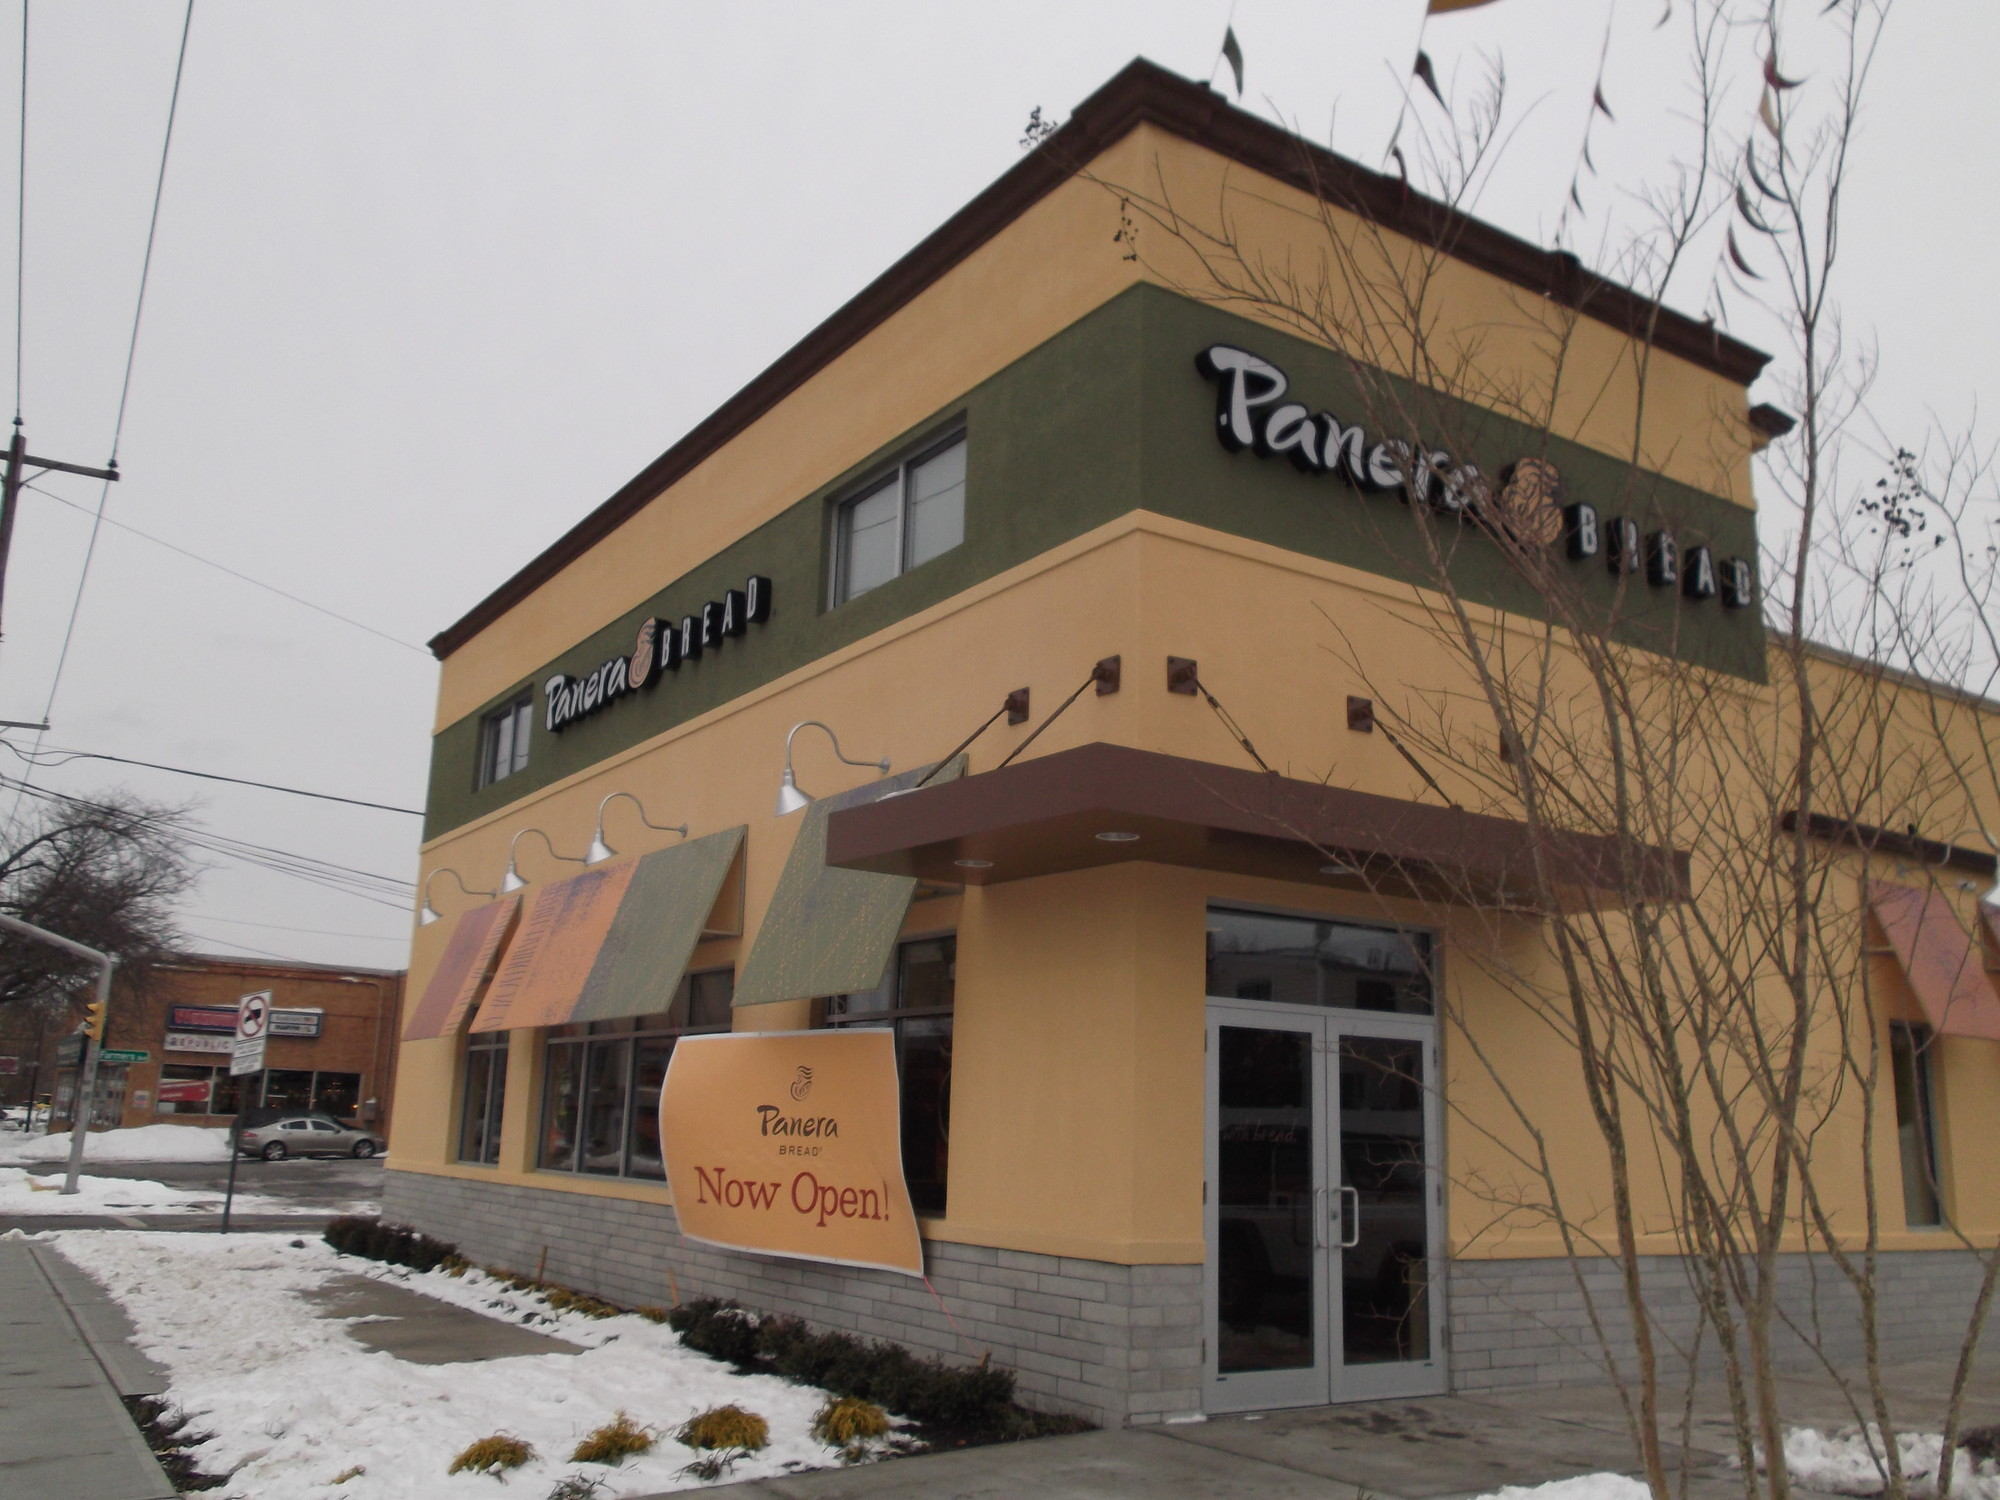 Long Island's newest Panera Bread café is near the Bellmore-Merrick border.